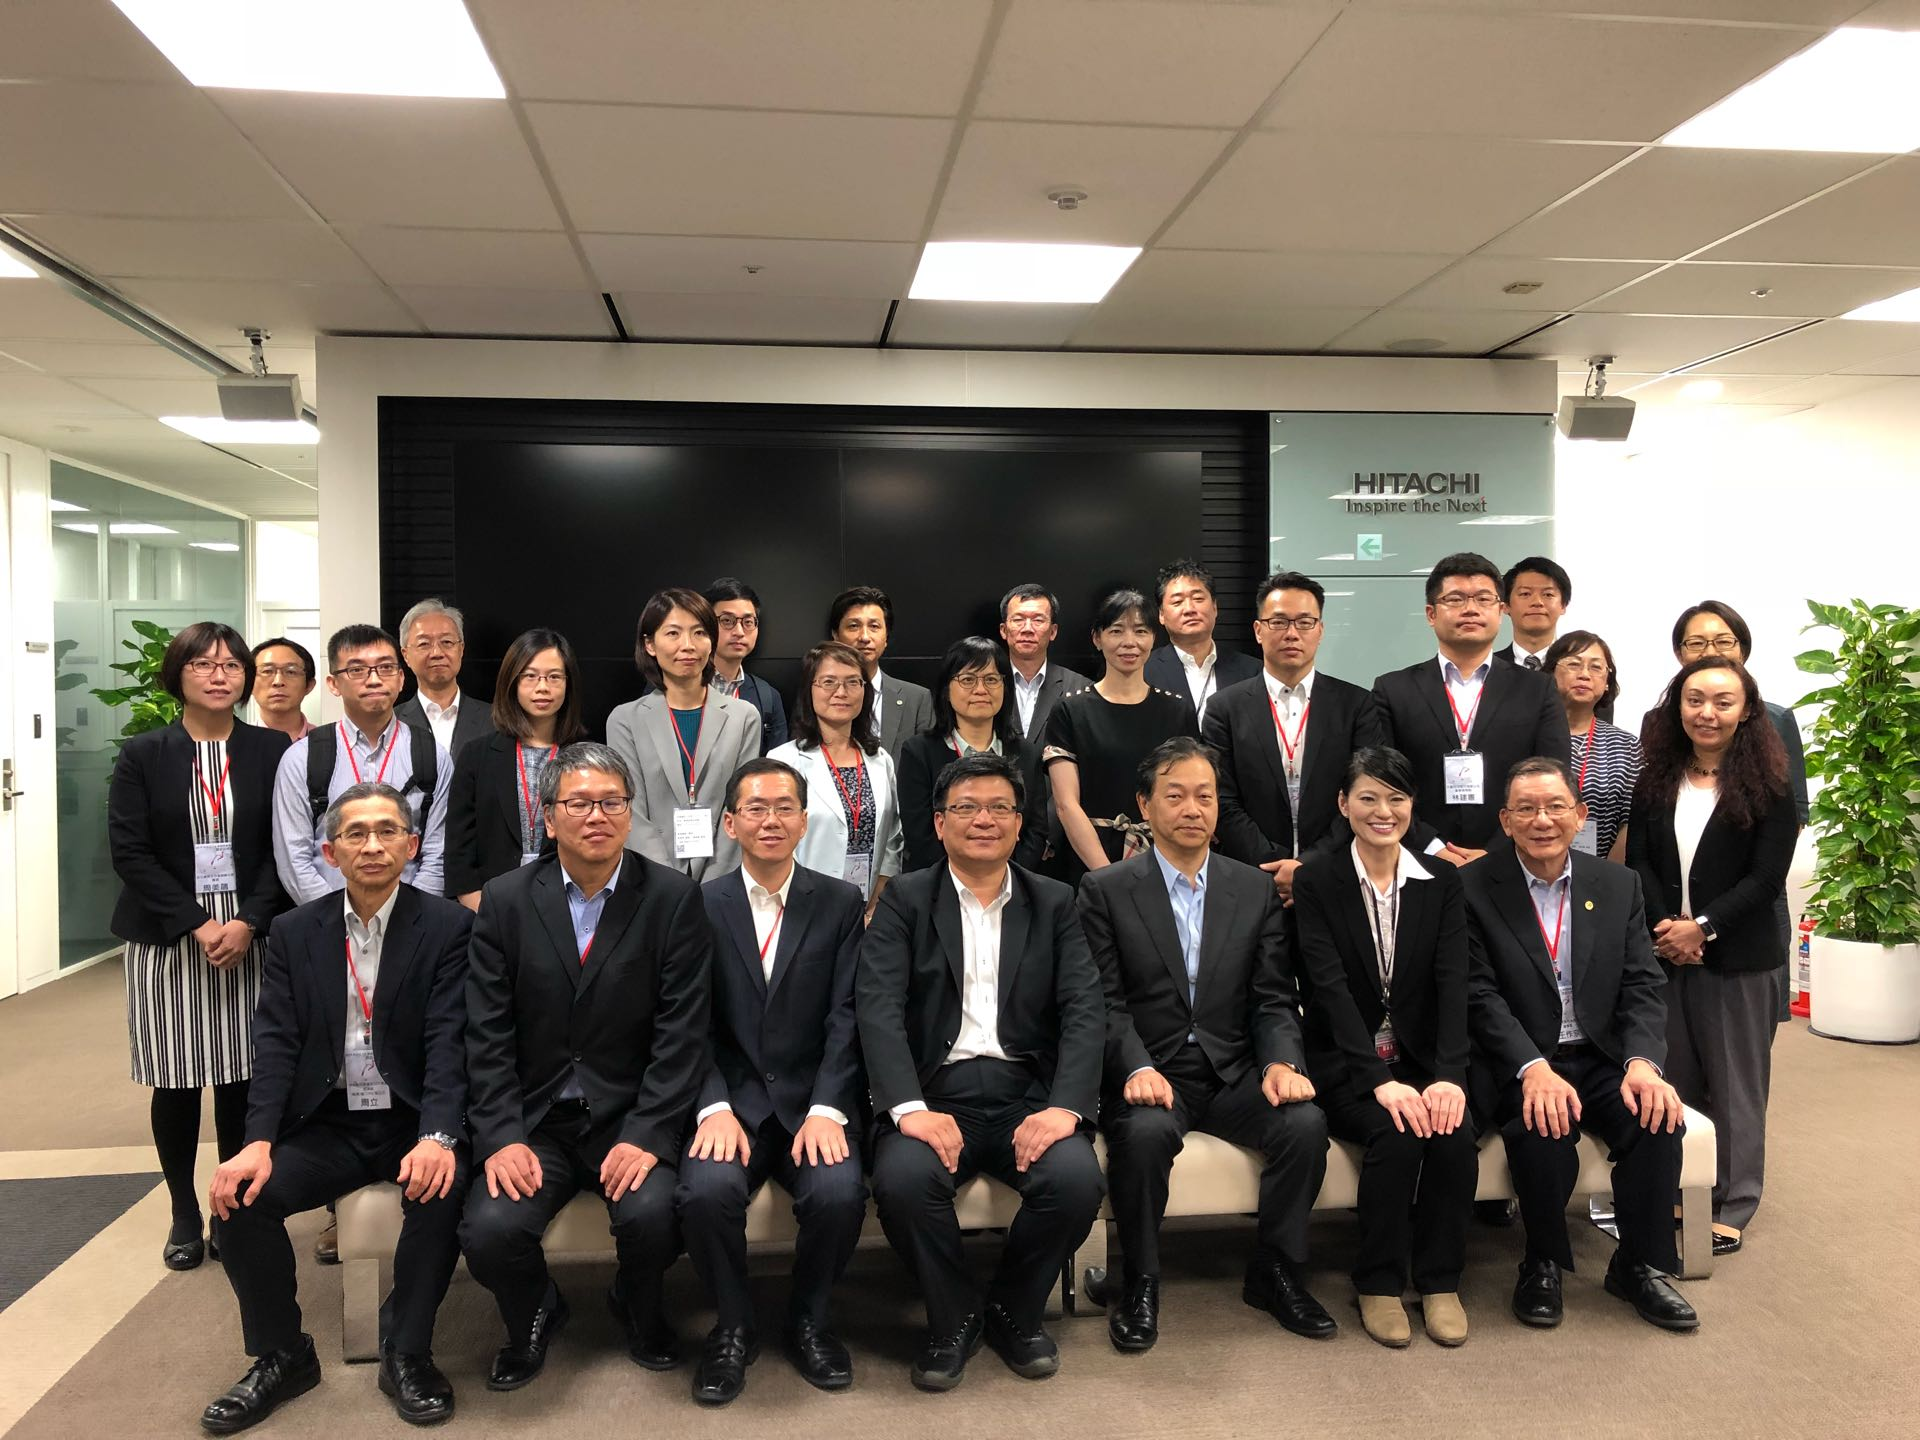 2019 Taiwan-Japan OB Alliance Kanto Industry Cooperation and Exchange Visiting Mission and Investment Promotion Mission photo-2